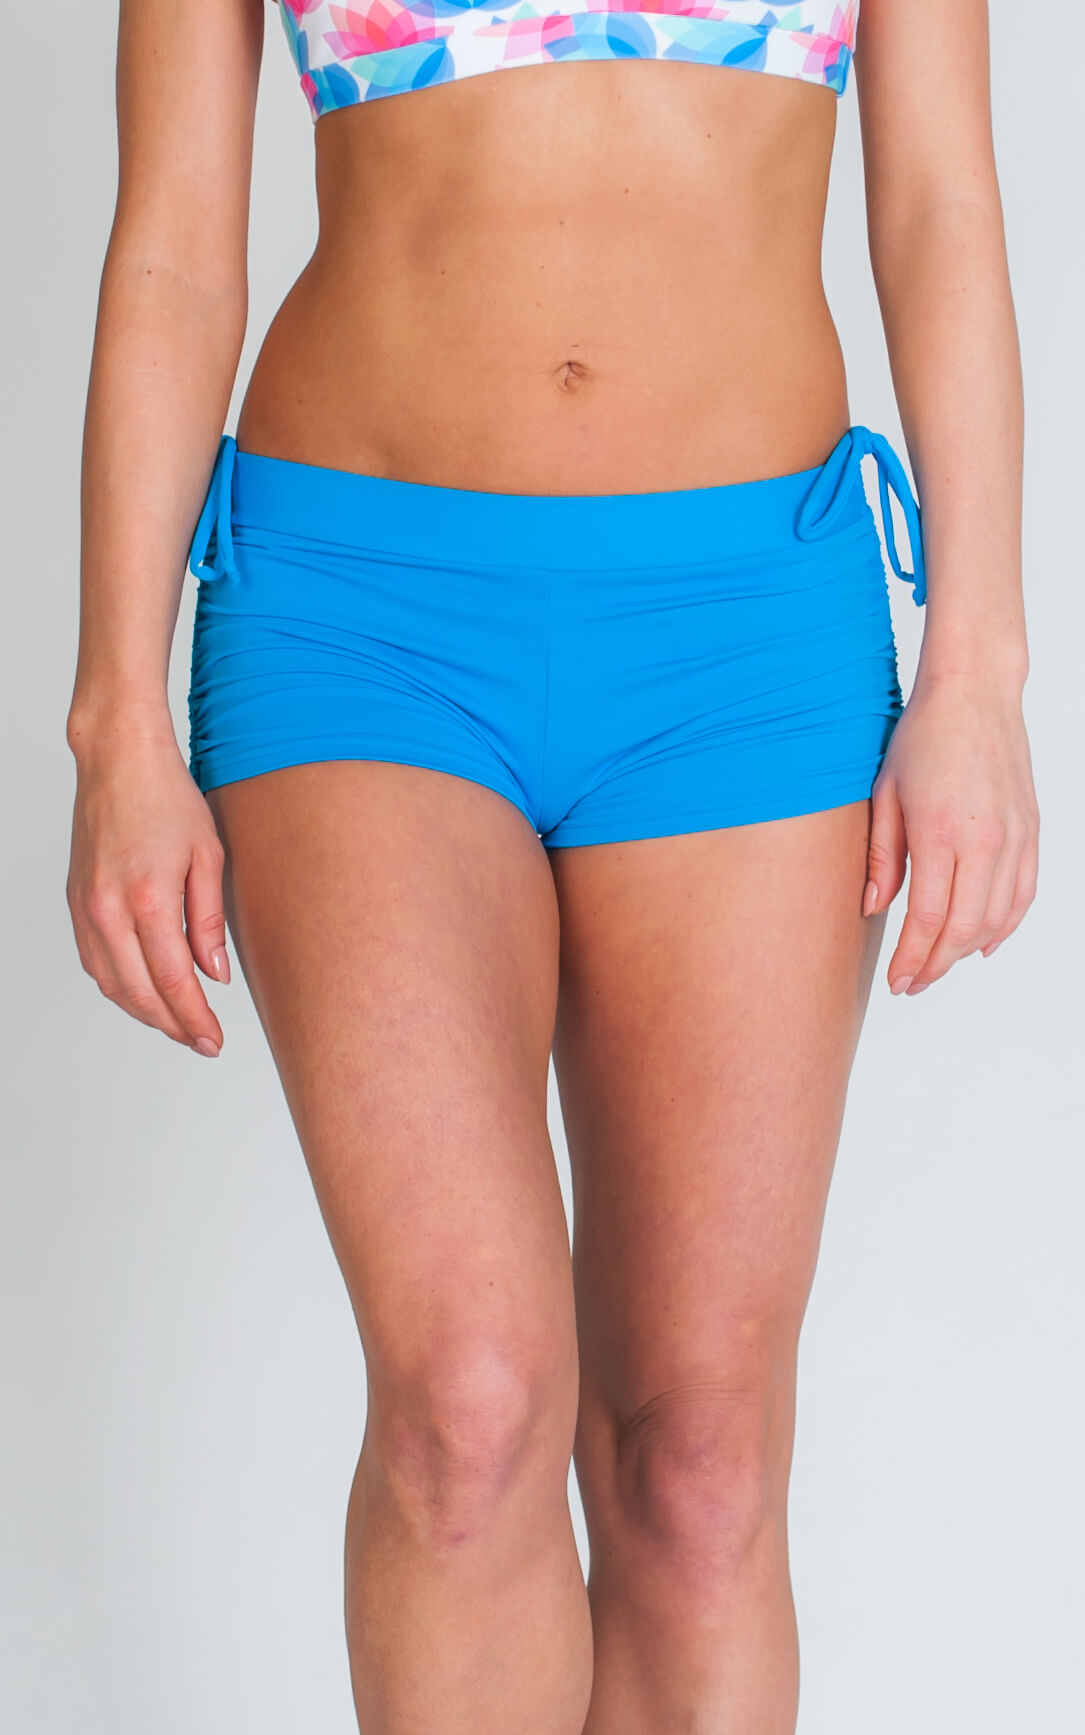 Wonder rövidnadrág skyler - jóga alsó: női fitness rövidnadrág, hot yoga shorts for women, athletic shorts womens, shorts for women, best yoga shorts, workout shorts